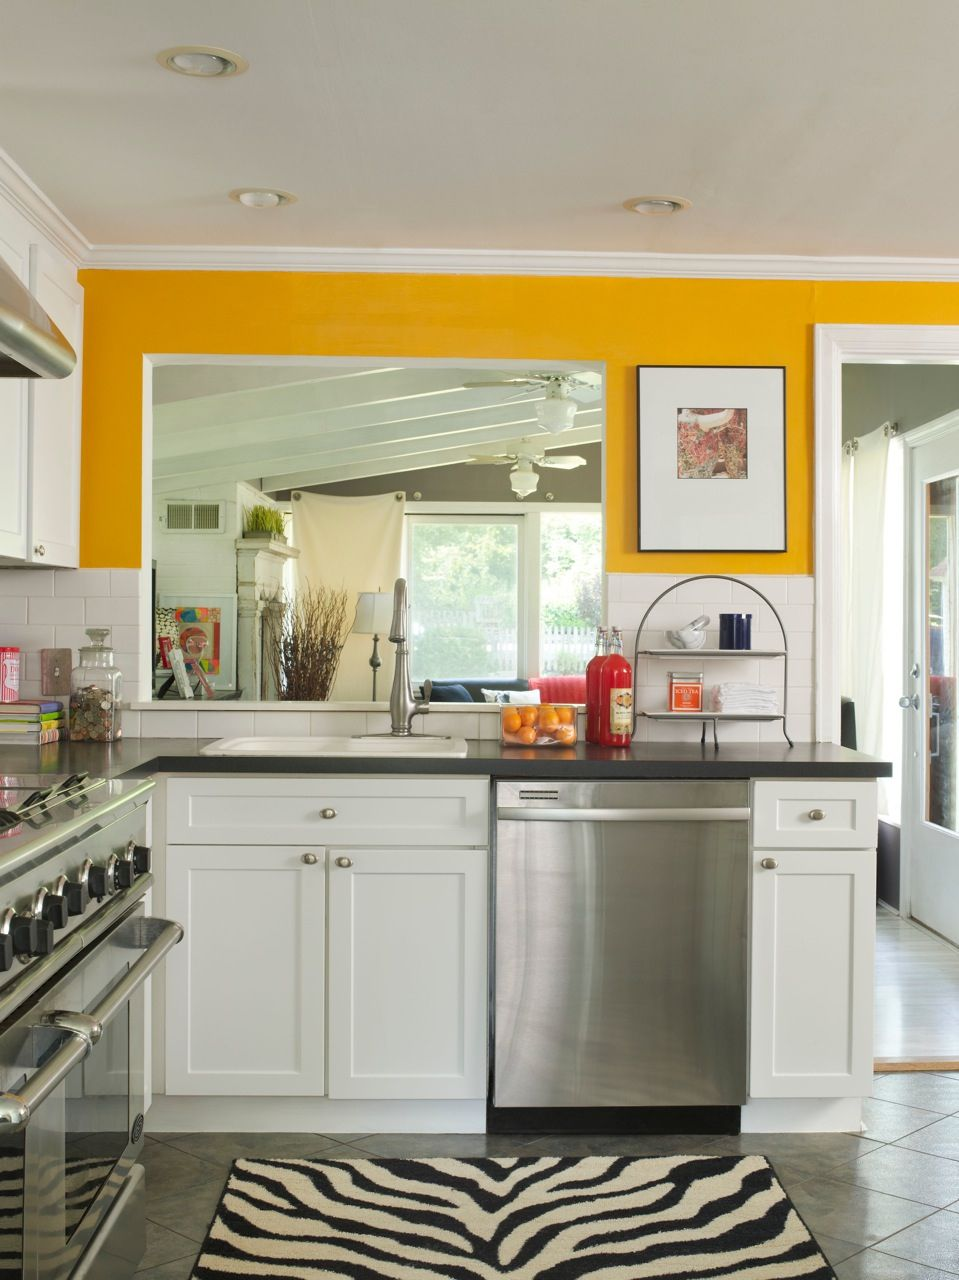 100+ Yellow Kitchen Paint Colors - Kitchen Remodel Ideas for Small